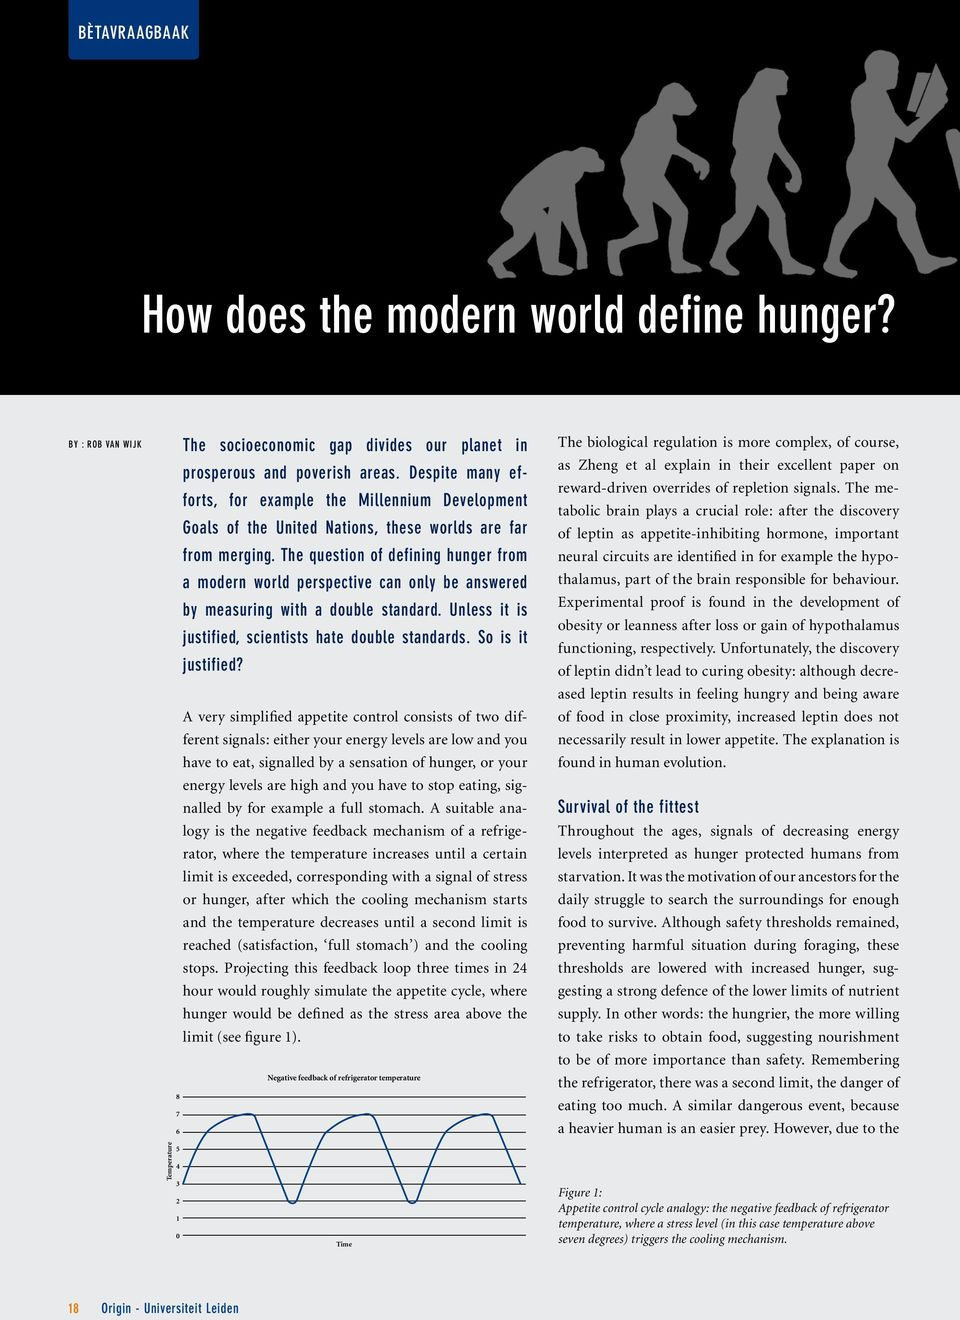 The question of defining hunger from a modern world perspective can only be answered by measuring with a double standard. Unless it is justified, scientists hate double standards. So is it justified?